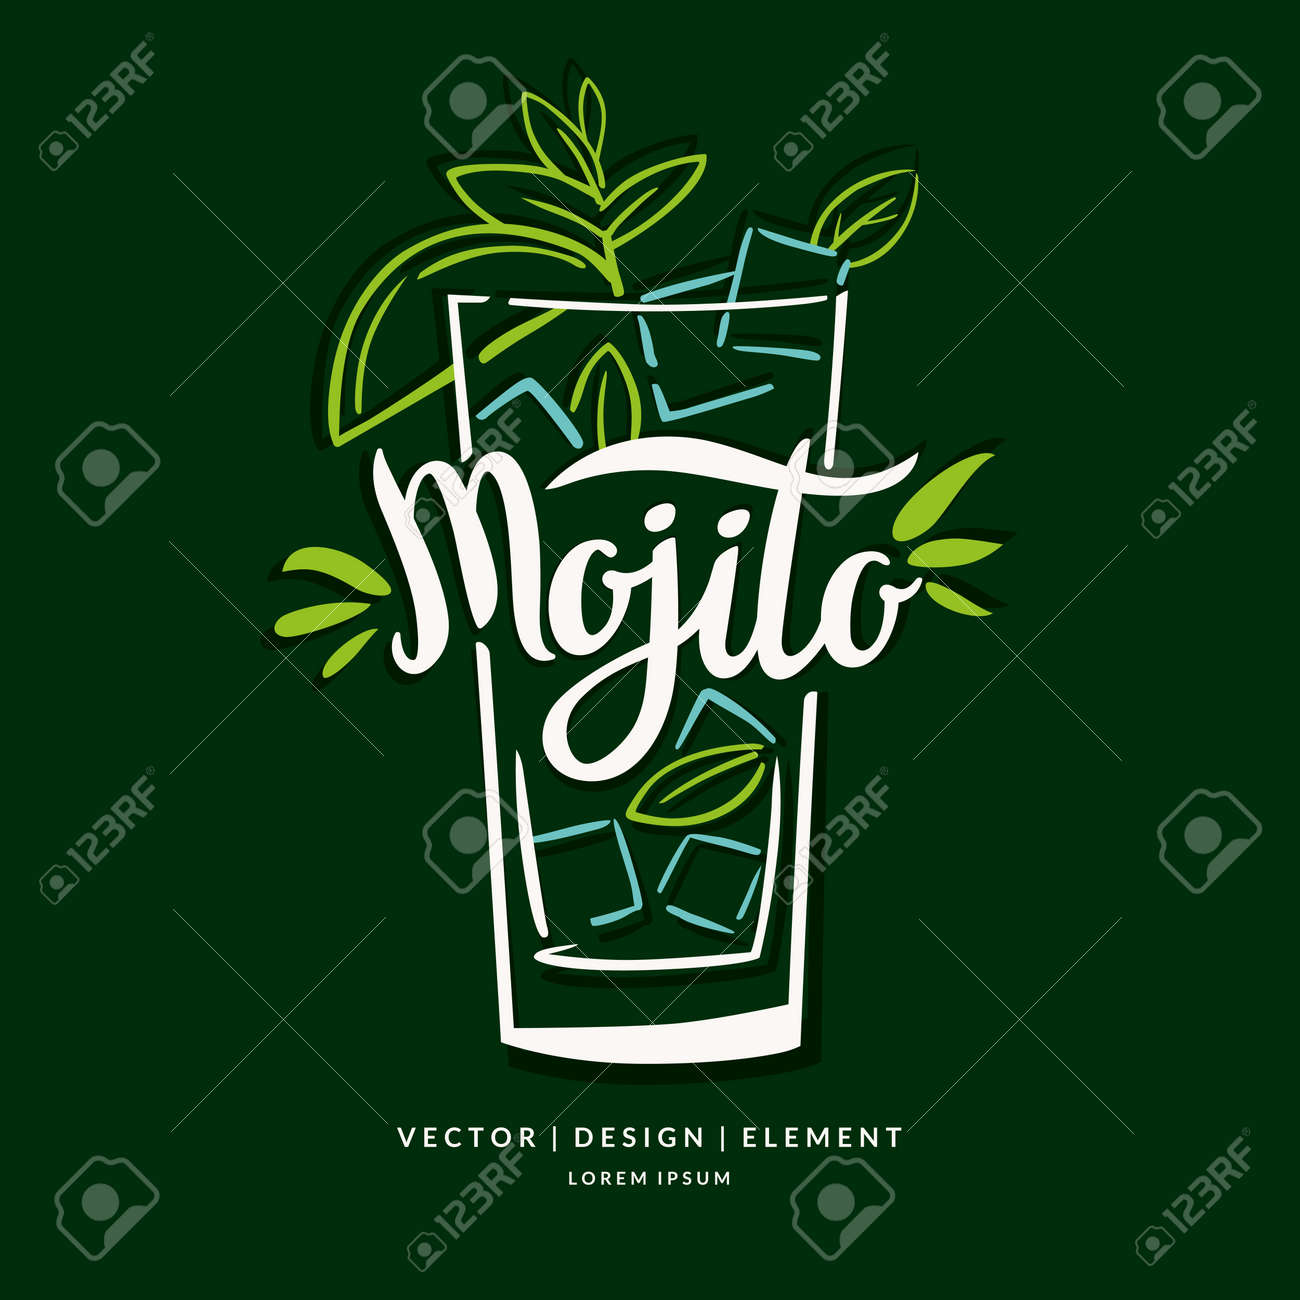 Modern hand drawn lettering label for alcohol cocktail Mojito. Calligraphy brush and ink. Handwritten inscriptions for layout and template. - 67842274